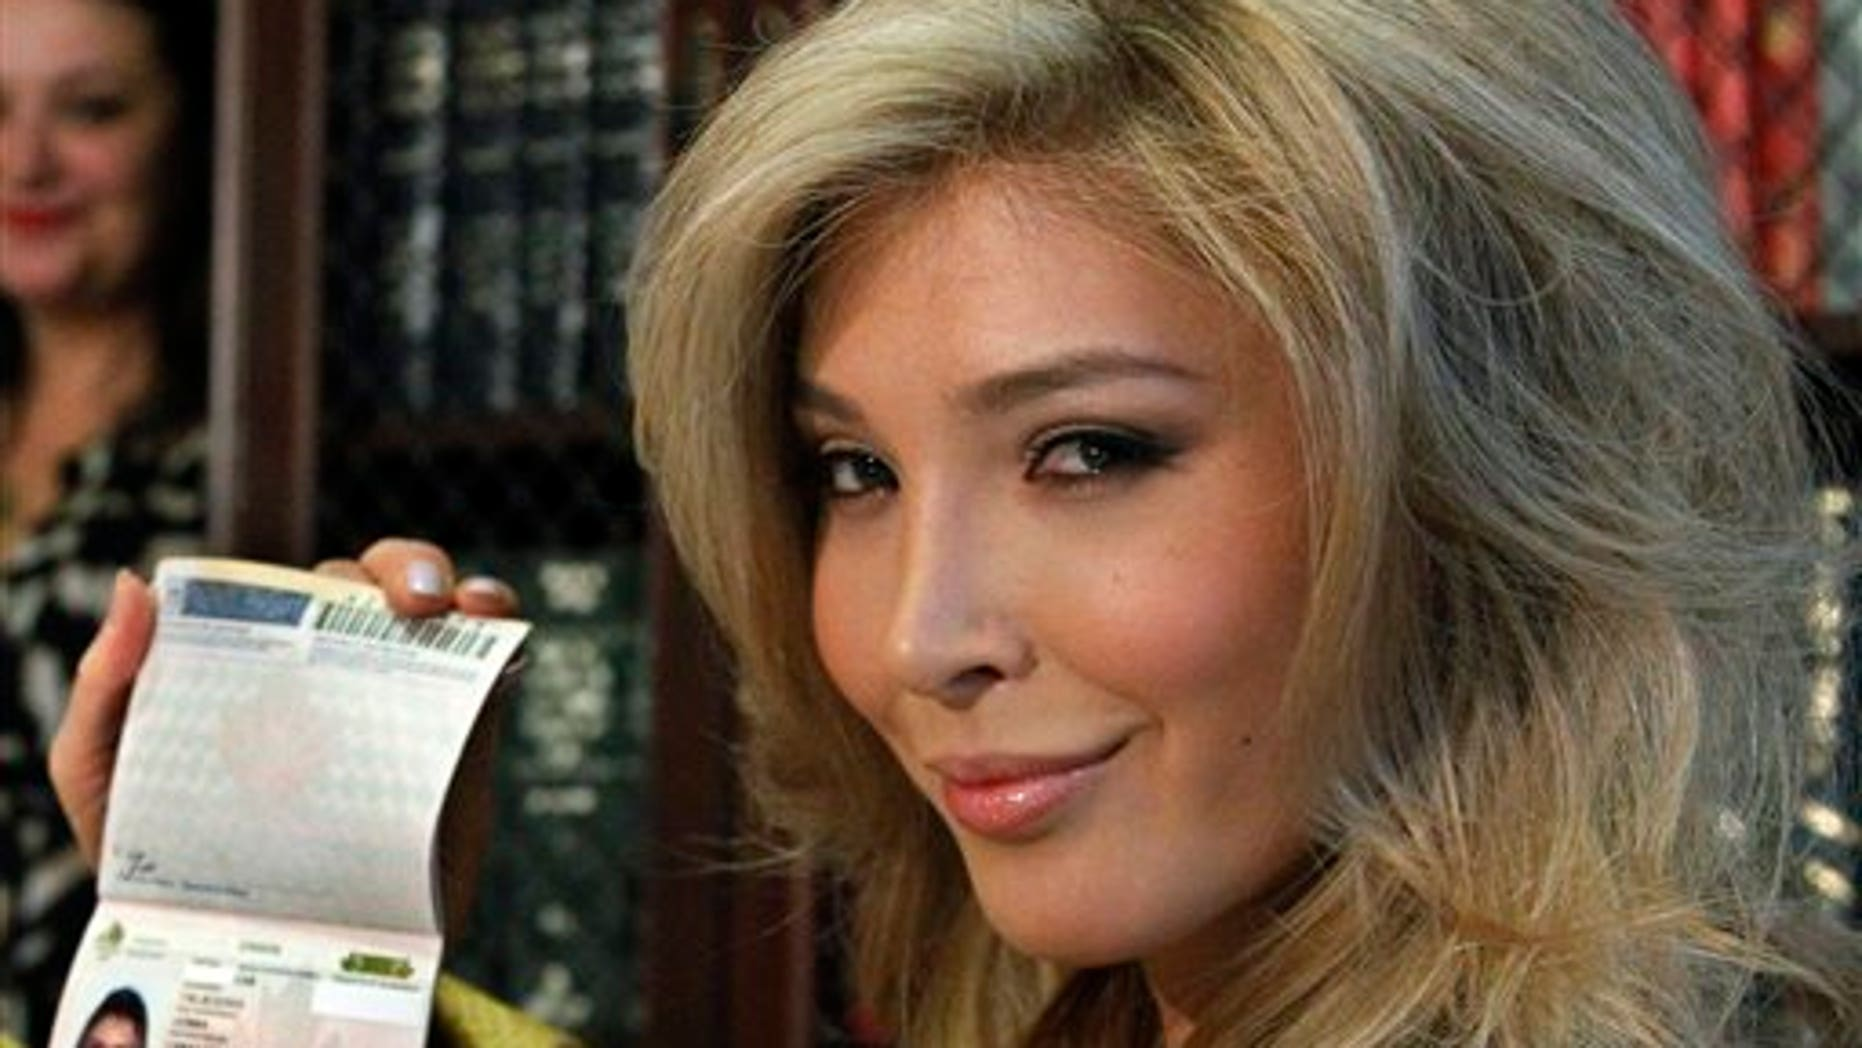 April 3: Jenna Talackova, who advanced to the finals of the Miss Canada competition, part of the Miss Universe contest, and was recently forced out of the competition, shows her passport that lists her gender as female, at a news conference in Los Angeles.